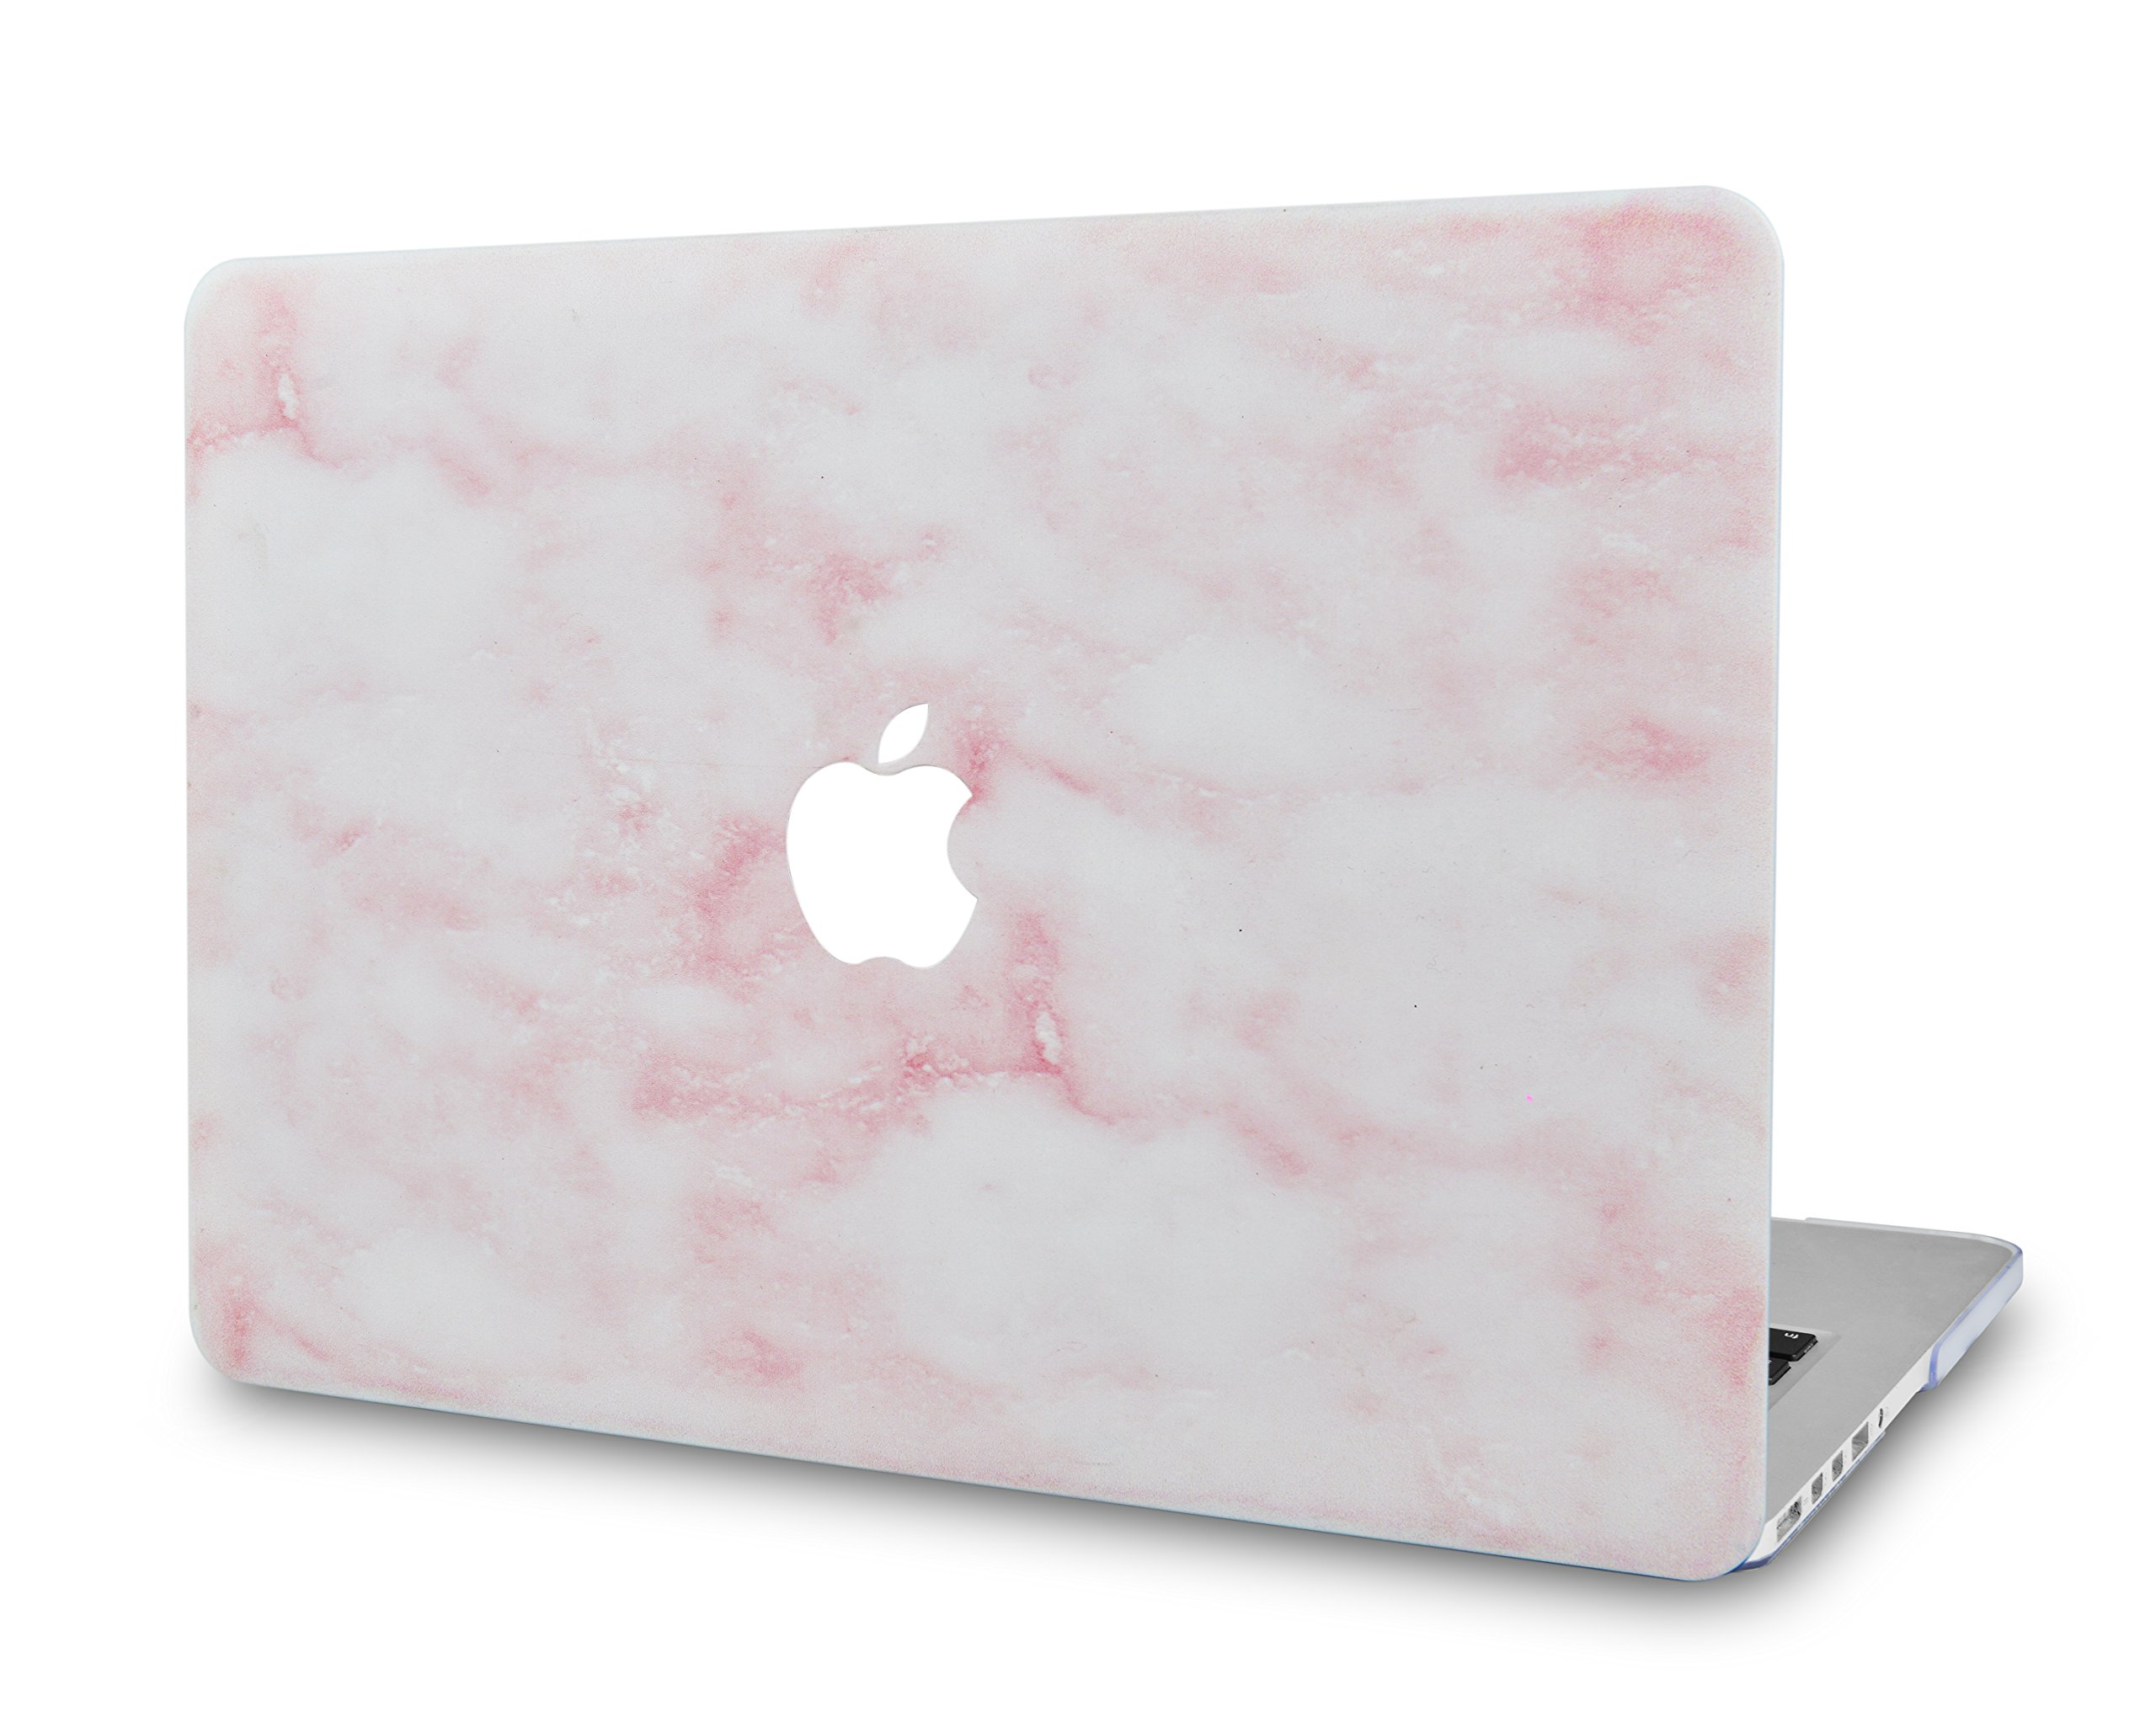 LuvCase Rubberized Plastic Hard Shell Cover Compatible MacBook Pro 13 inch A2159 / A1989 / A1708 / A1706 with/Without Touch Bar, Newest Release 2019/2018/2017/2016 (Pinky Marble)